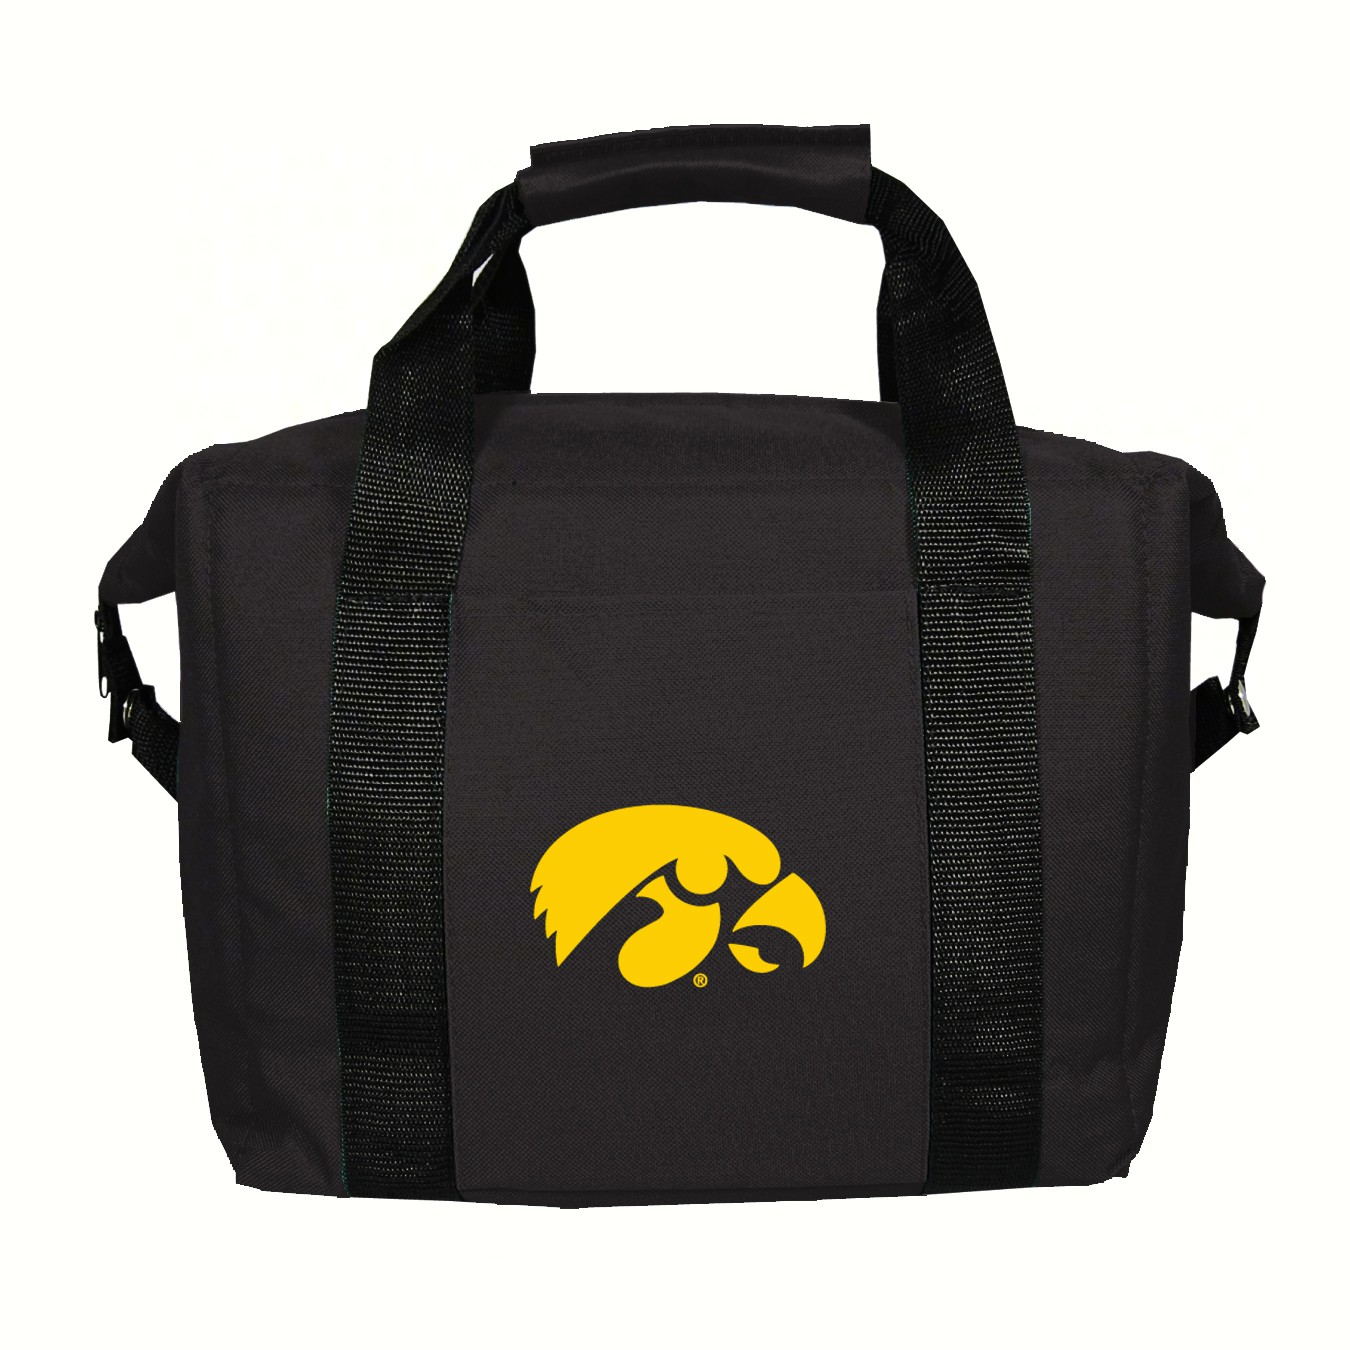 Kooler Bag Iowa Hawkeyes (Holds a 12 Pack)